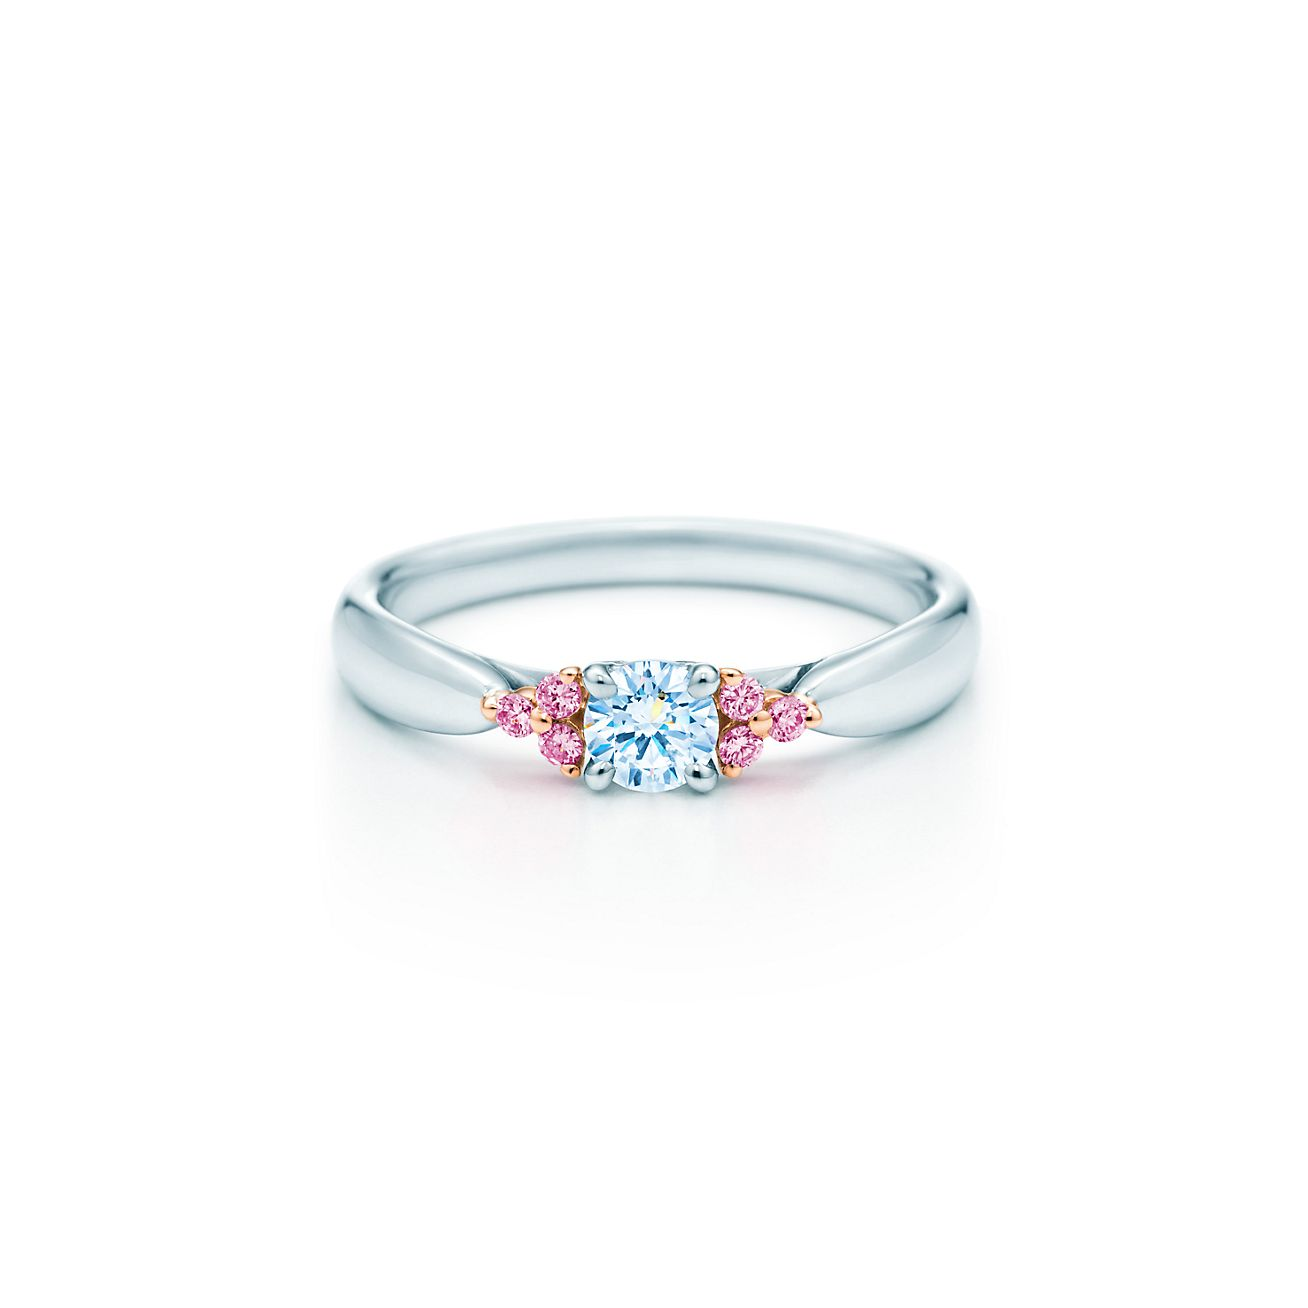 Tiffany Harmony Fancy Pink diamond side stone ring in rose gold